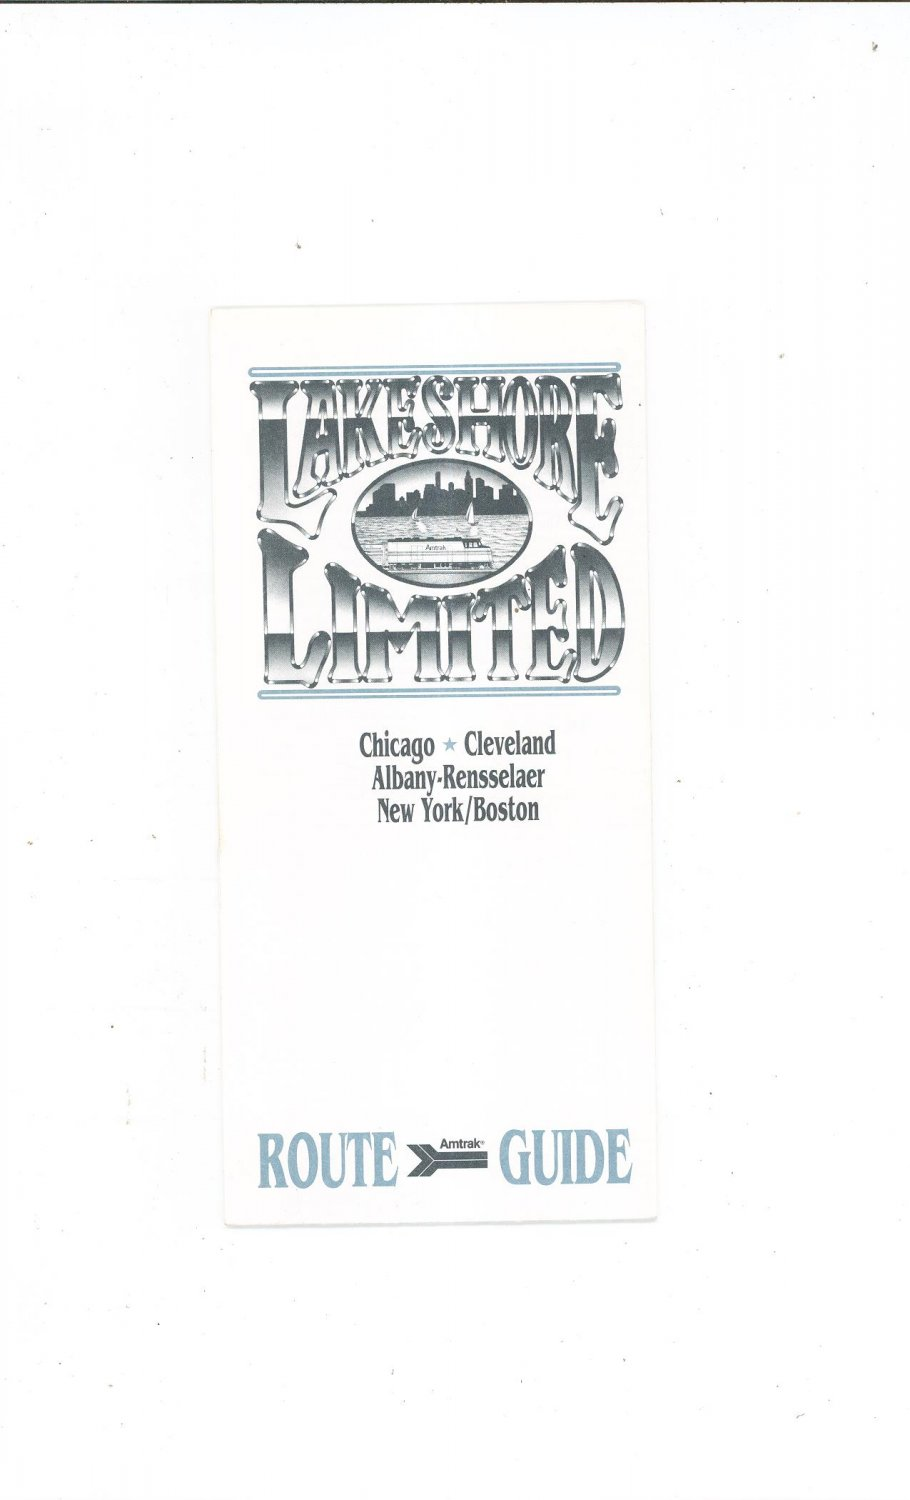 Amtrak Lake Shore Limited Route Guide Chicago Cleveland 1993